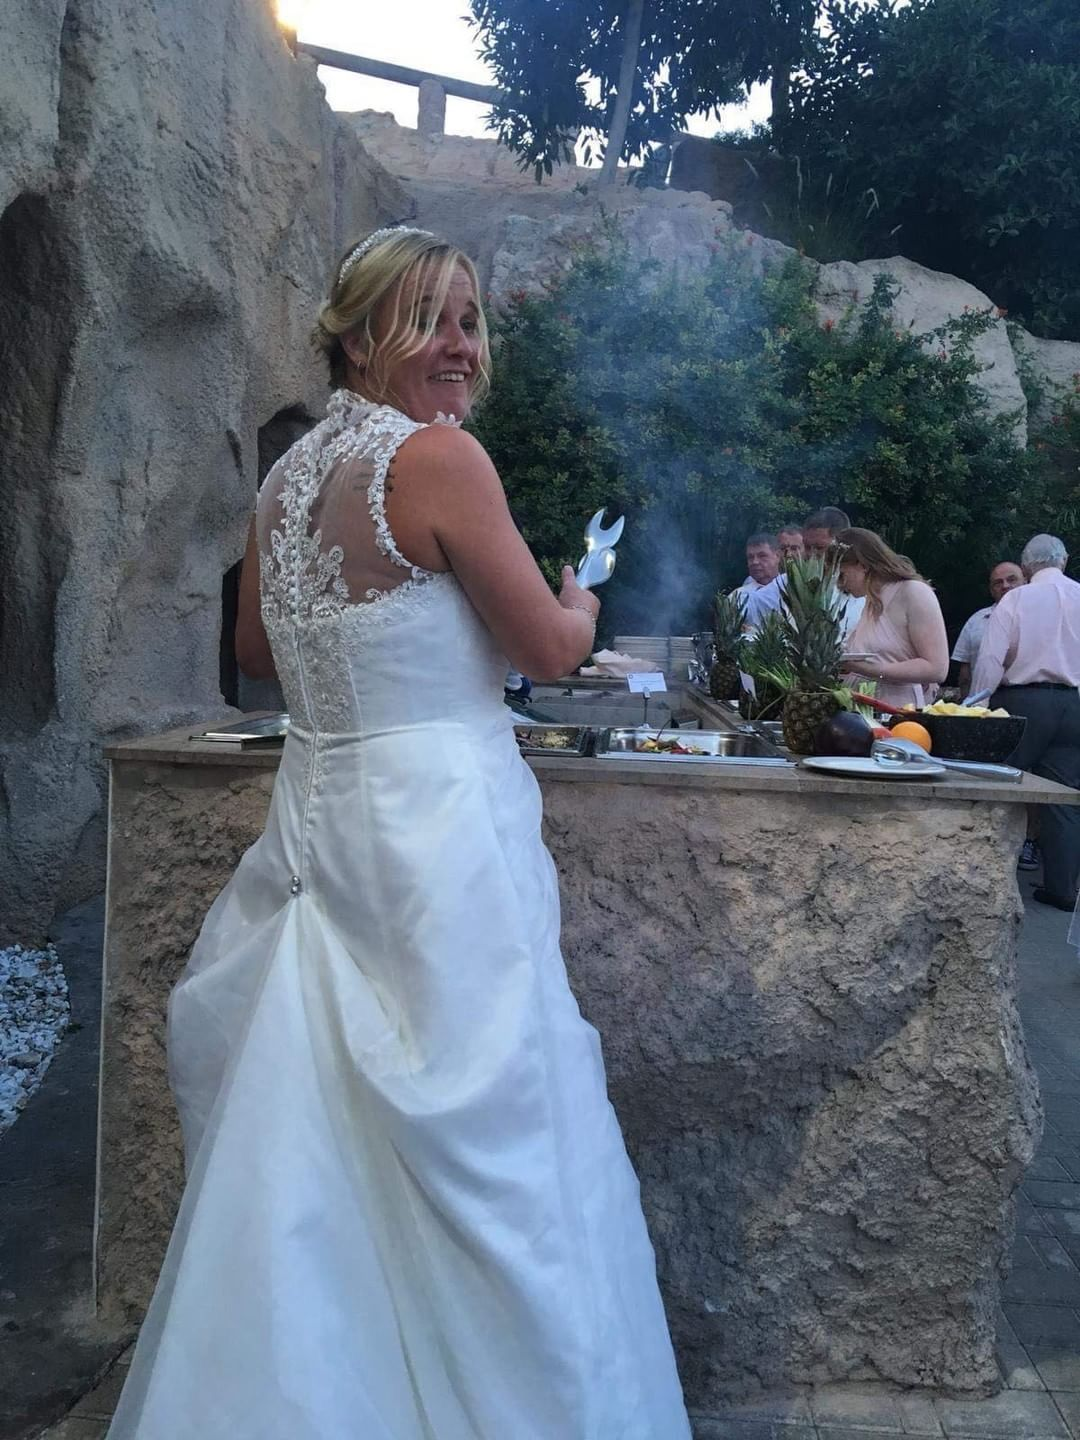 If You Would Like To Move Around Your Reception With Ease Then A Trainloop Could Wedding Dress Train Bustle Wedding Gowns Mermaid Mermaid Style Wedding Dress